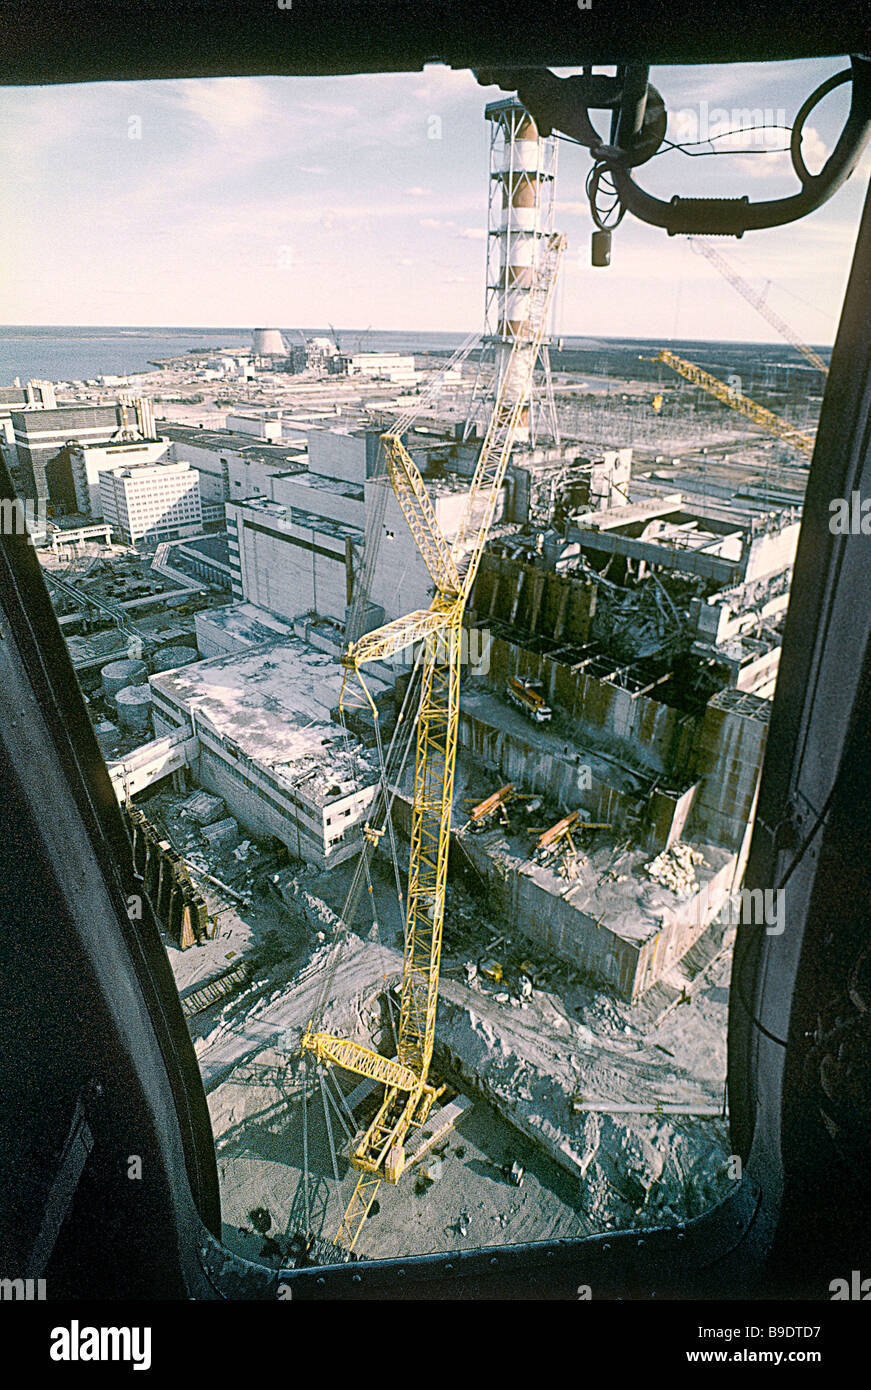 Bird s eye view of Chernobyl nuclear power plant after explosion - Stock Image